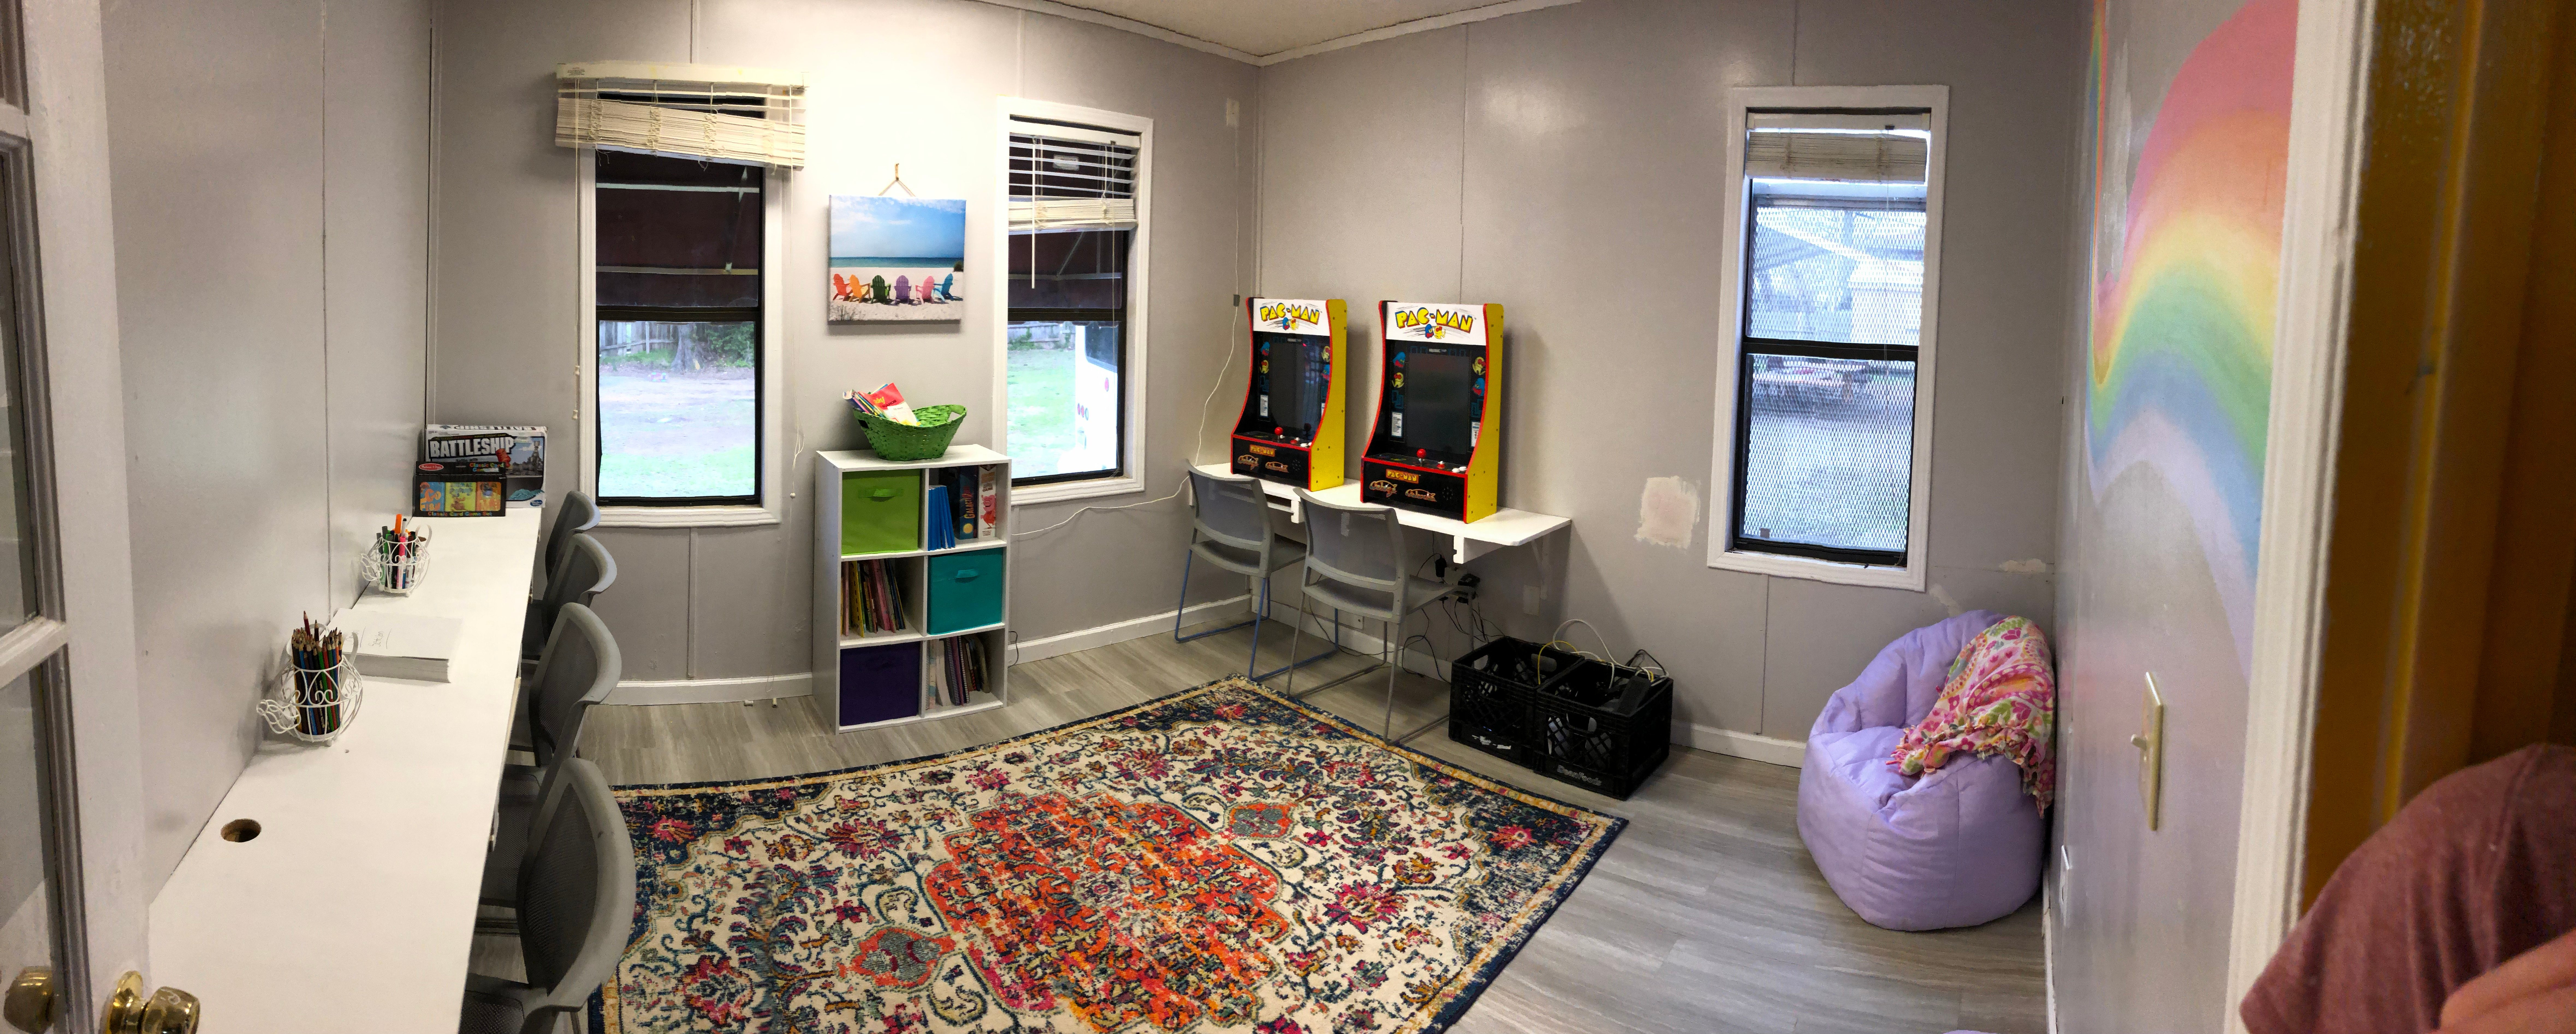 The kids' hangout room! (newly renovated by volunteers from Hutchison School)